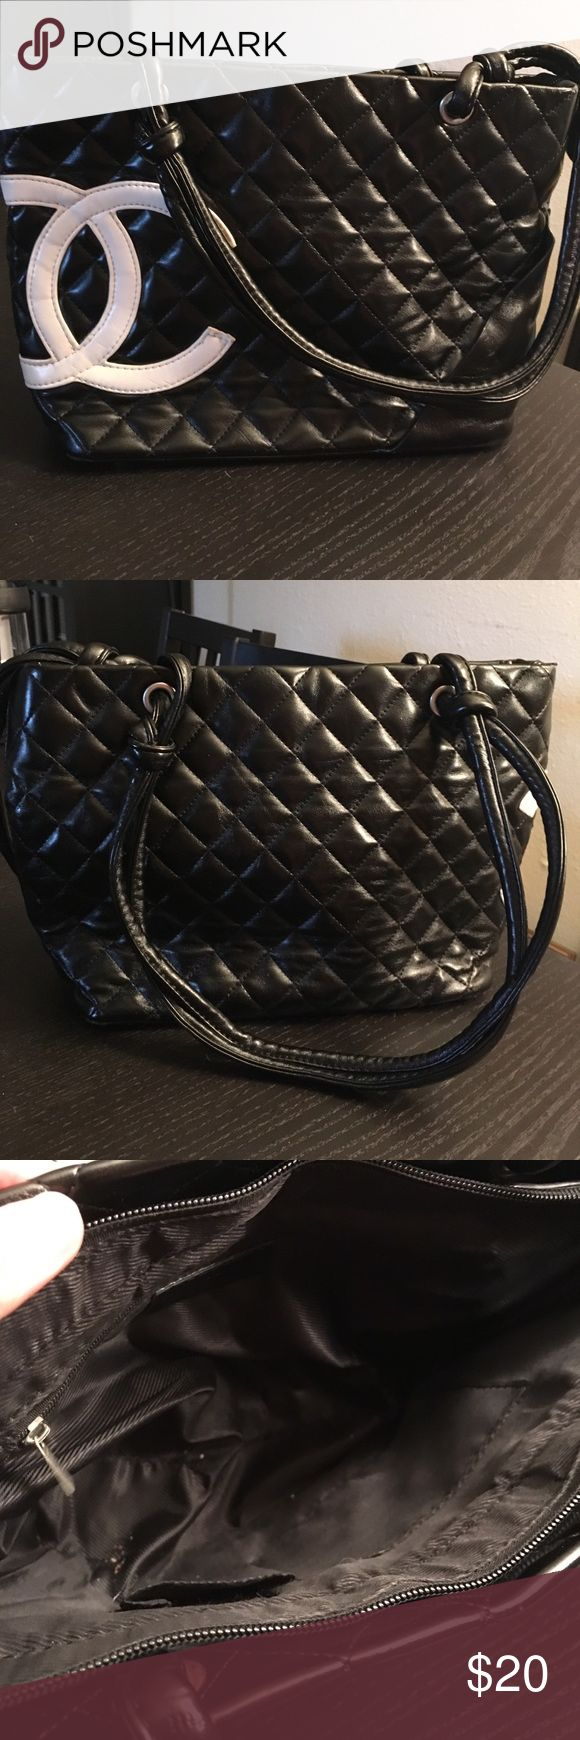 Chanel quilted bag Used condition Chanel shoulder bag. Zippered closure with one zippered pocket inside and two open pockets inside. This bag was well loved and has some wear and tear, as pictured. This is reflected in the price. CHANEL Bags Shoulder Bags